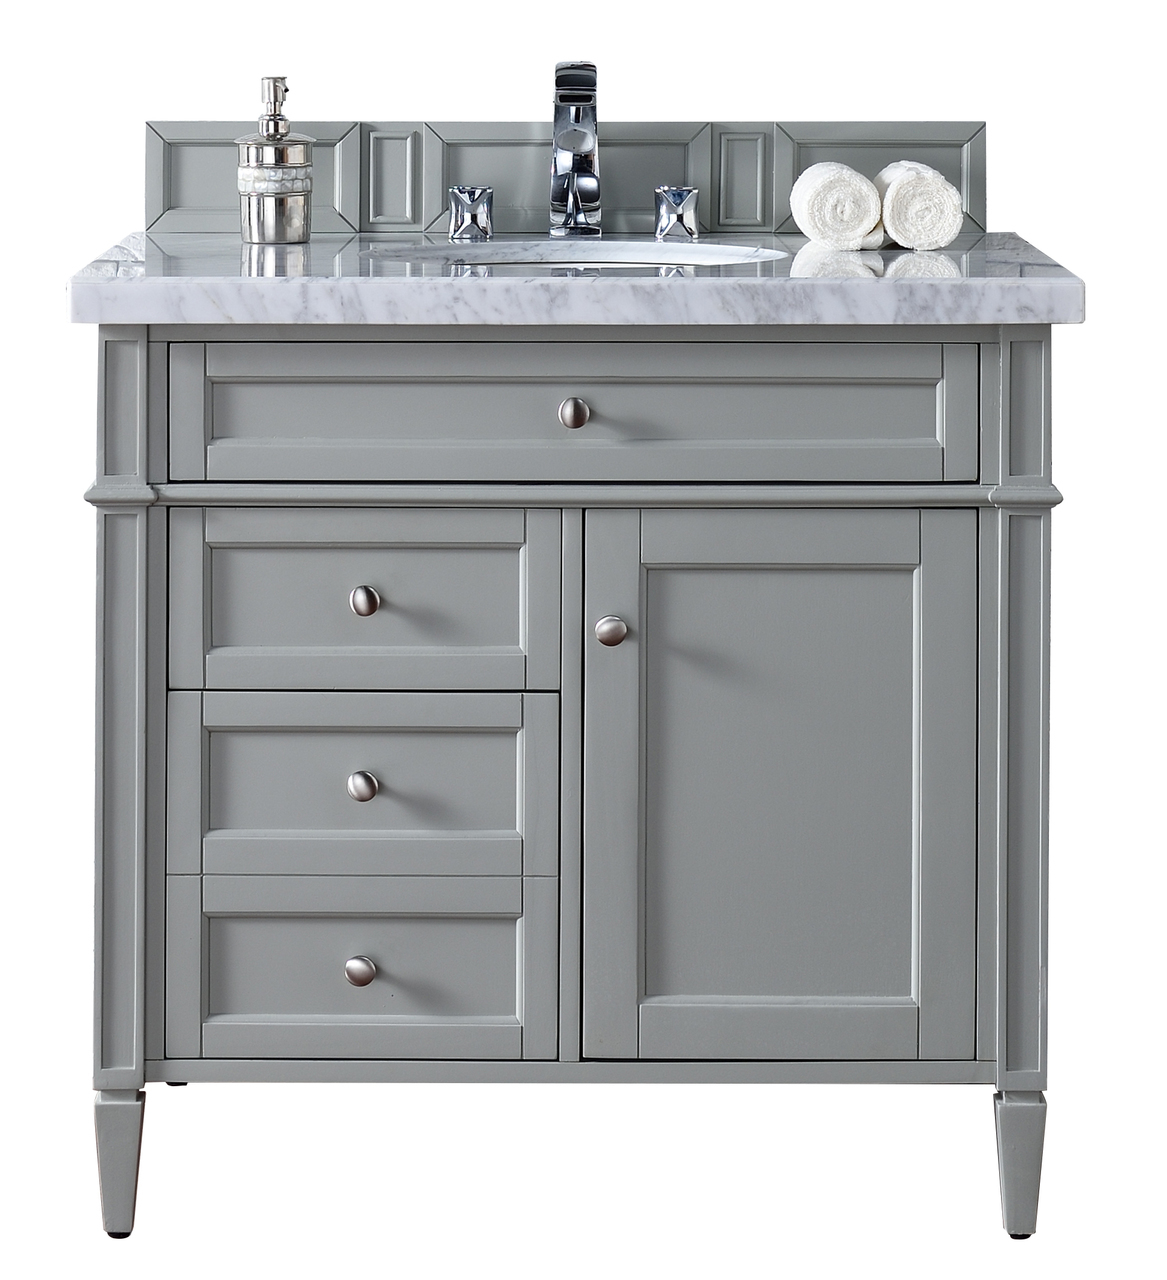 Designer Vanities For Bathrooms James Martin Brittany Collection 36 Quot Single Vanity Urban Gray